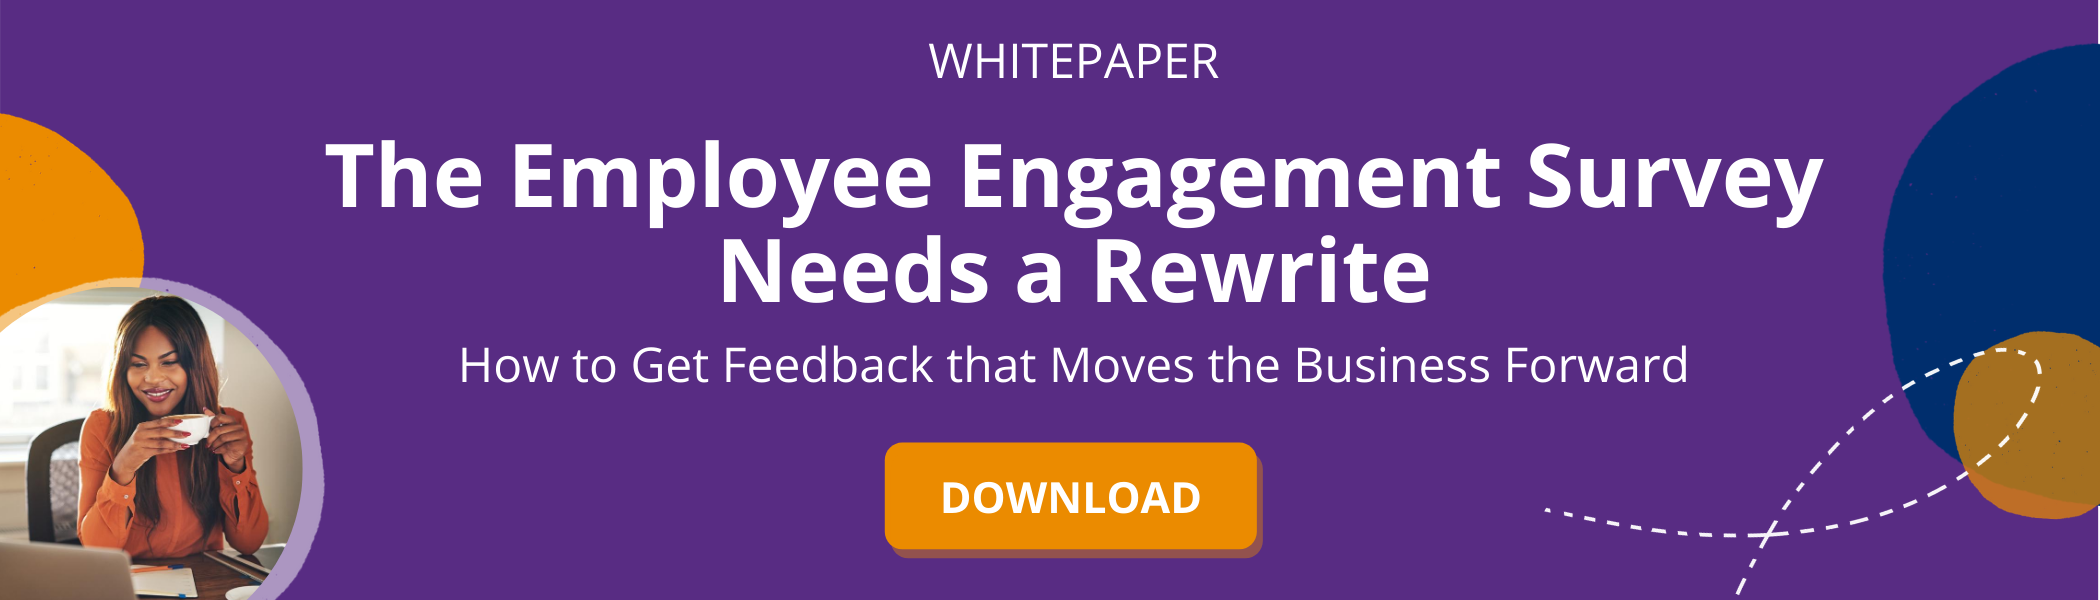 Button to download the whitepaper the employee engagement survey needs a rewrite